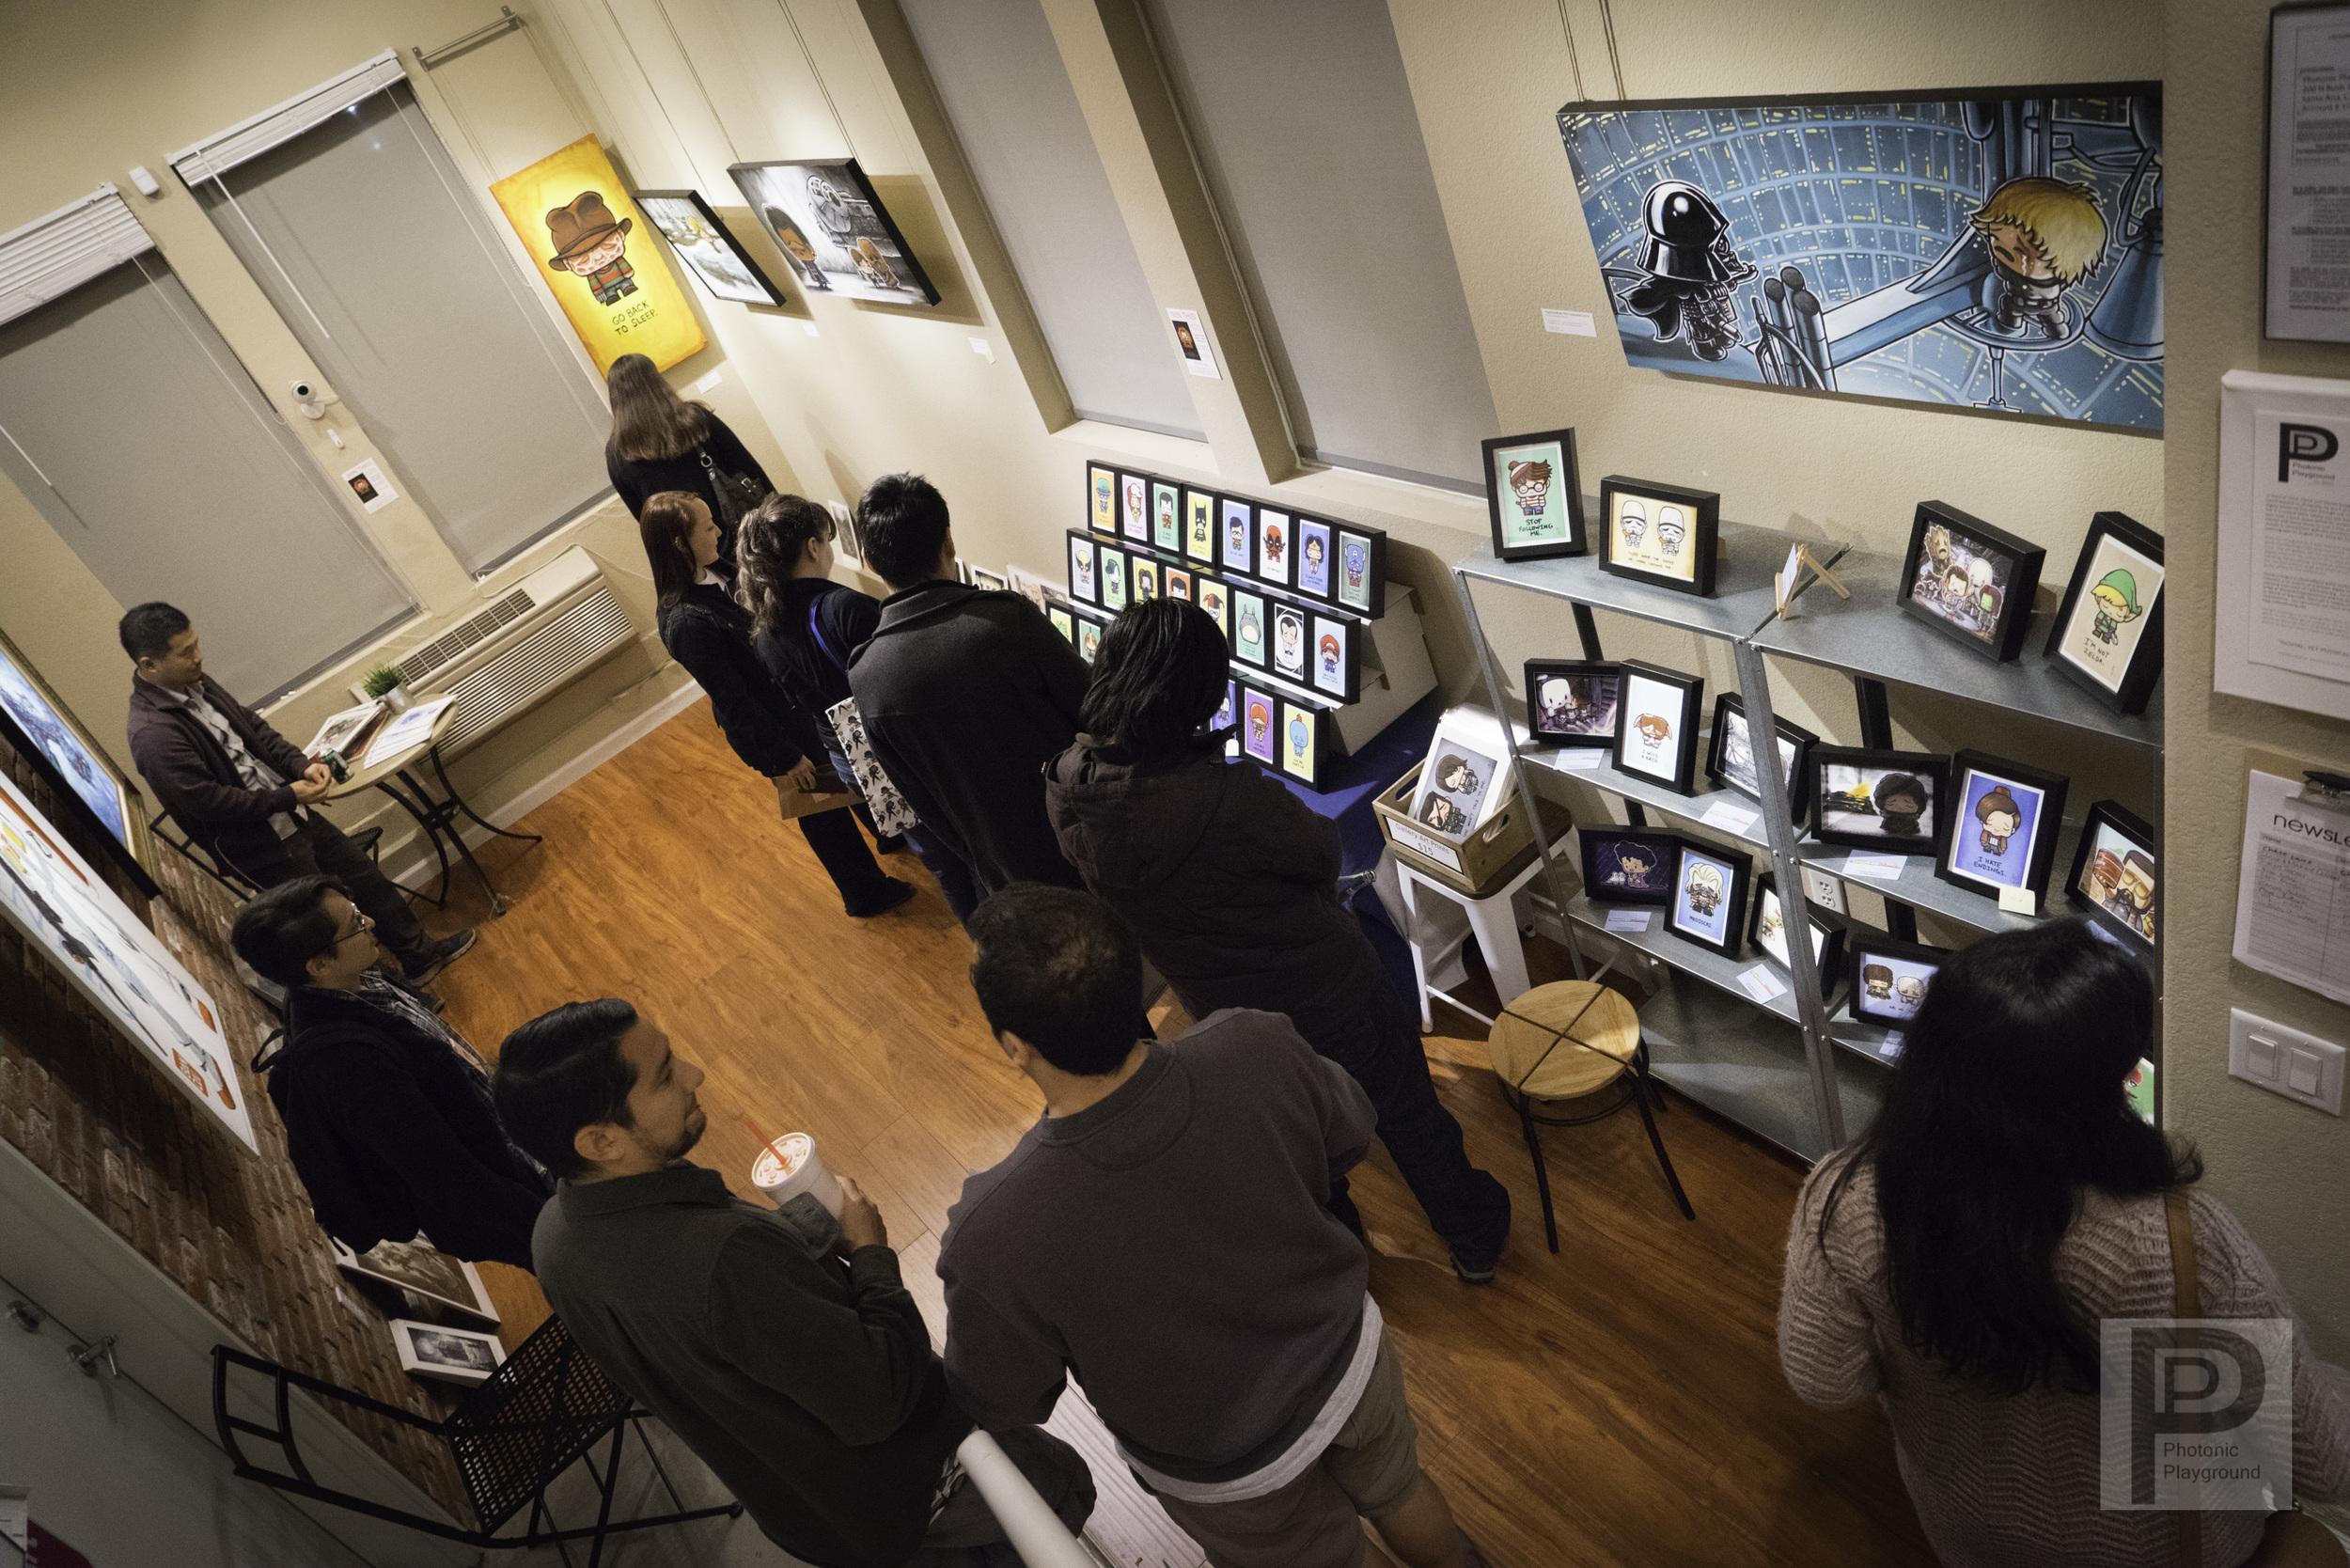 The gallery was abuzz the Winter cold day of December 2015 with the art of J Salvador Ramos and Tae young Choi.